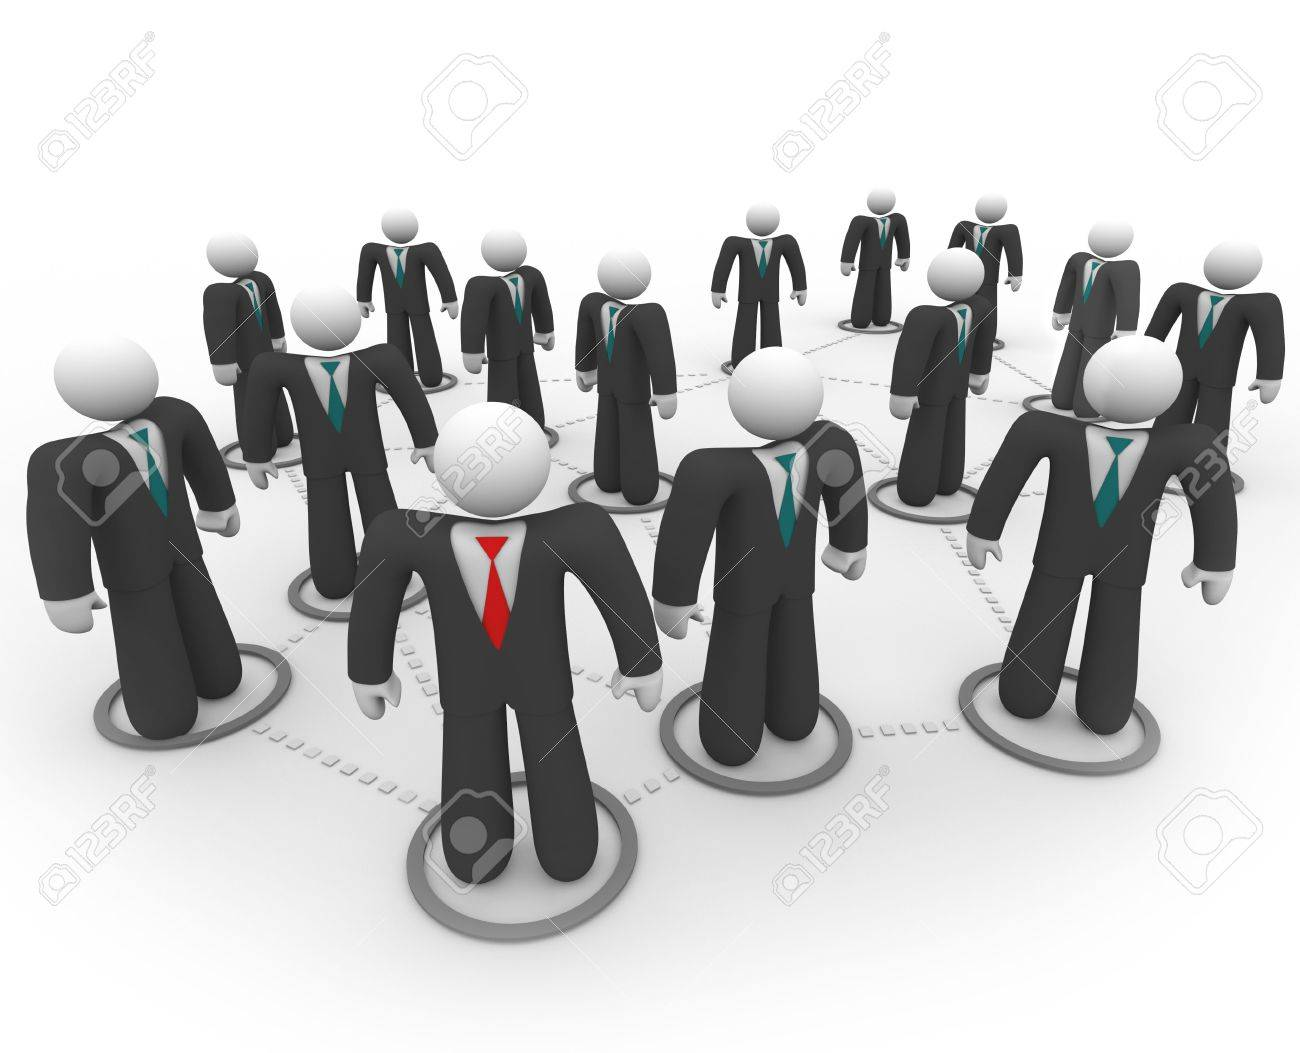 A social network of business people in suits and ties Stock Photo - 4650324